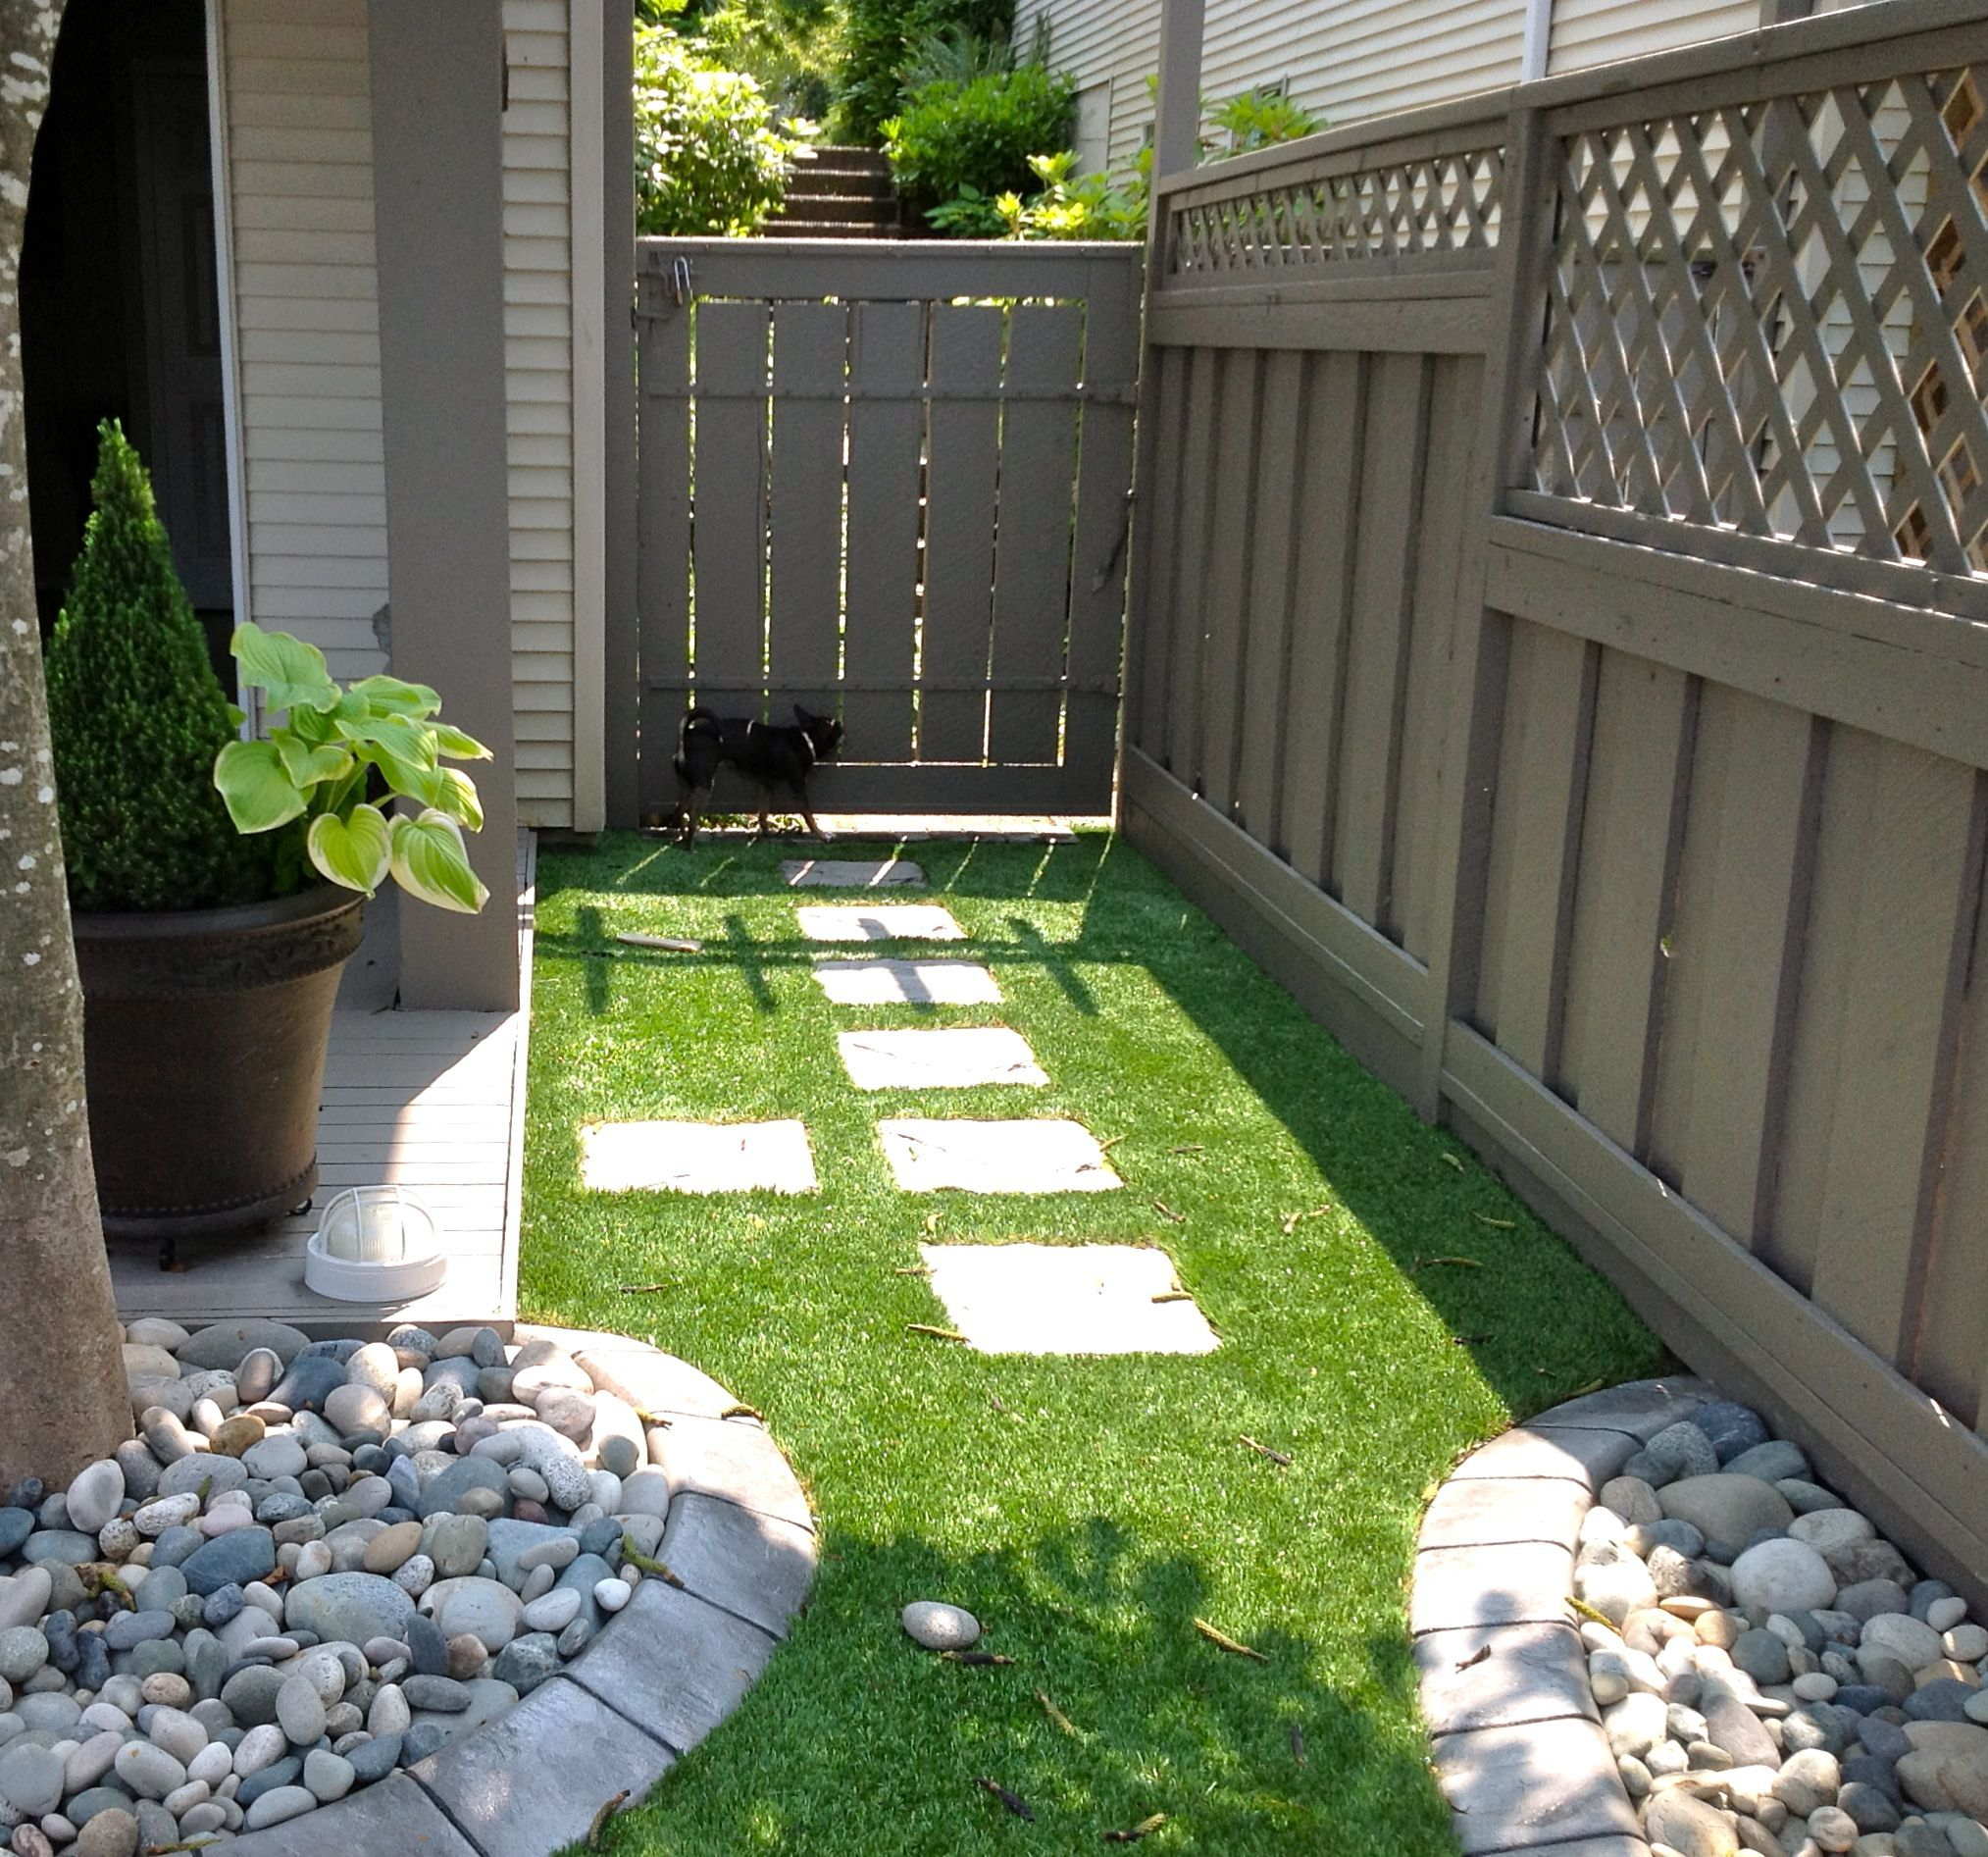 Dog Runs, Pet Mats For Indoor Or Outdoor, SYNLawn Allows